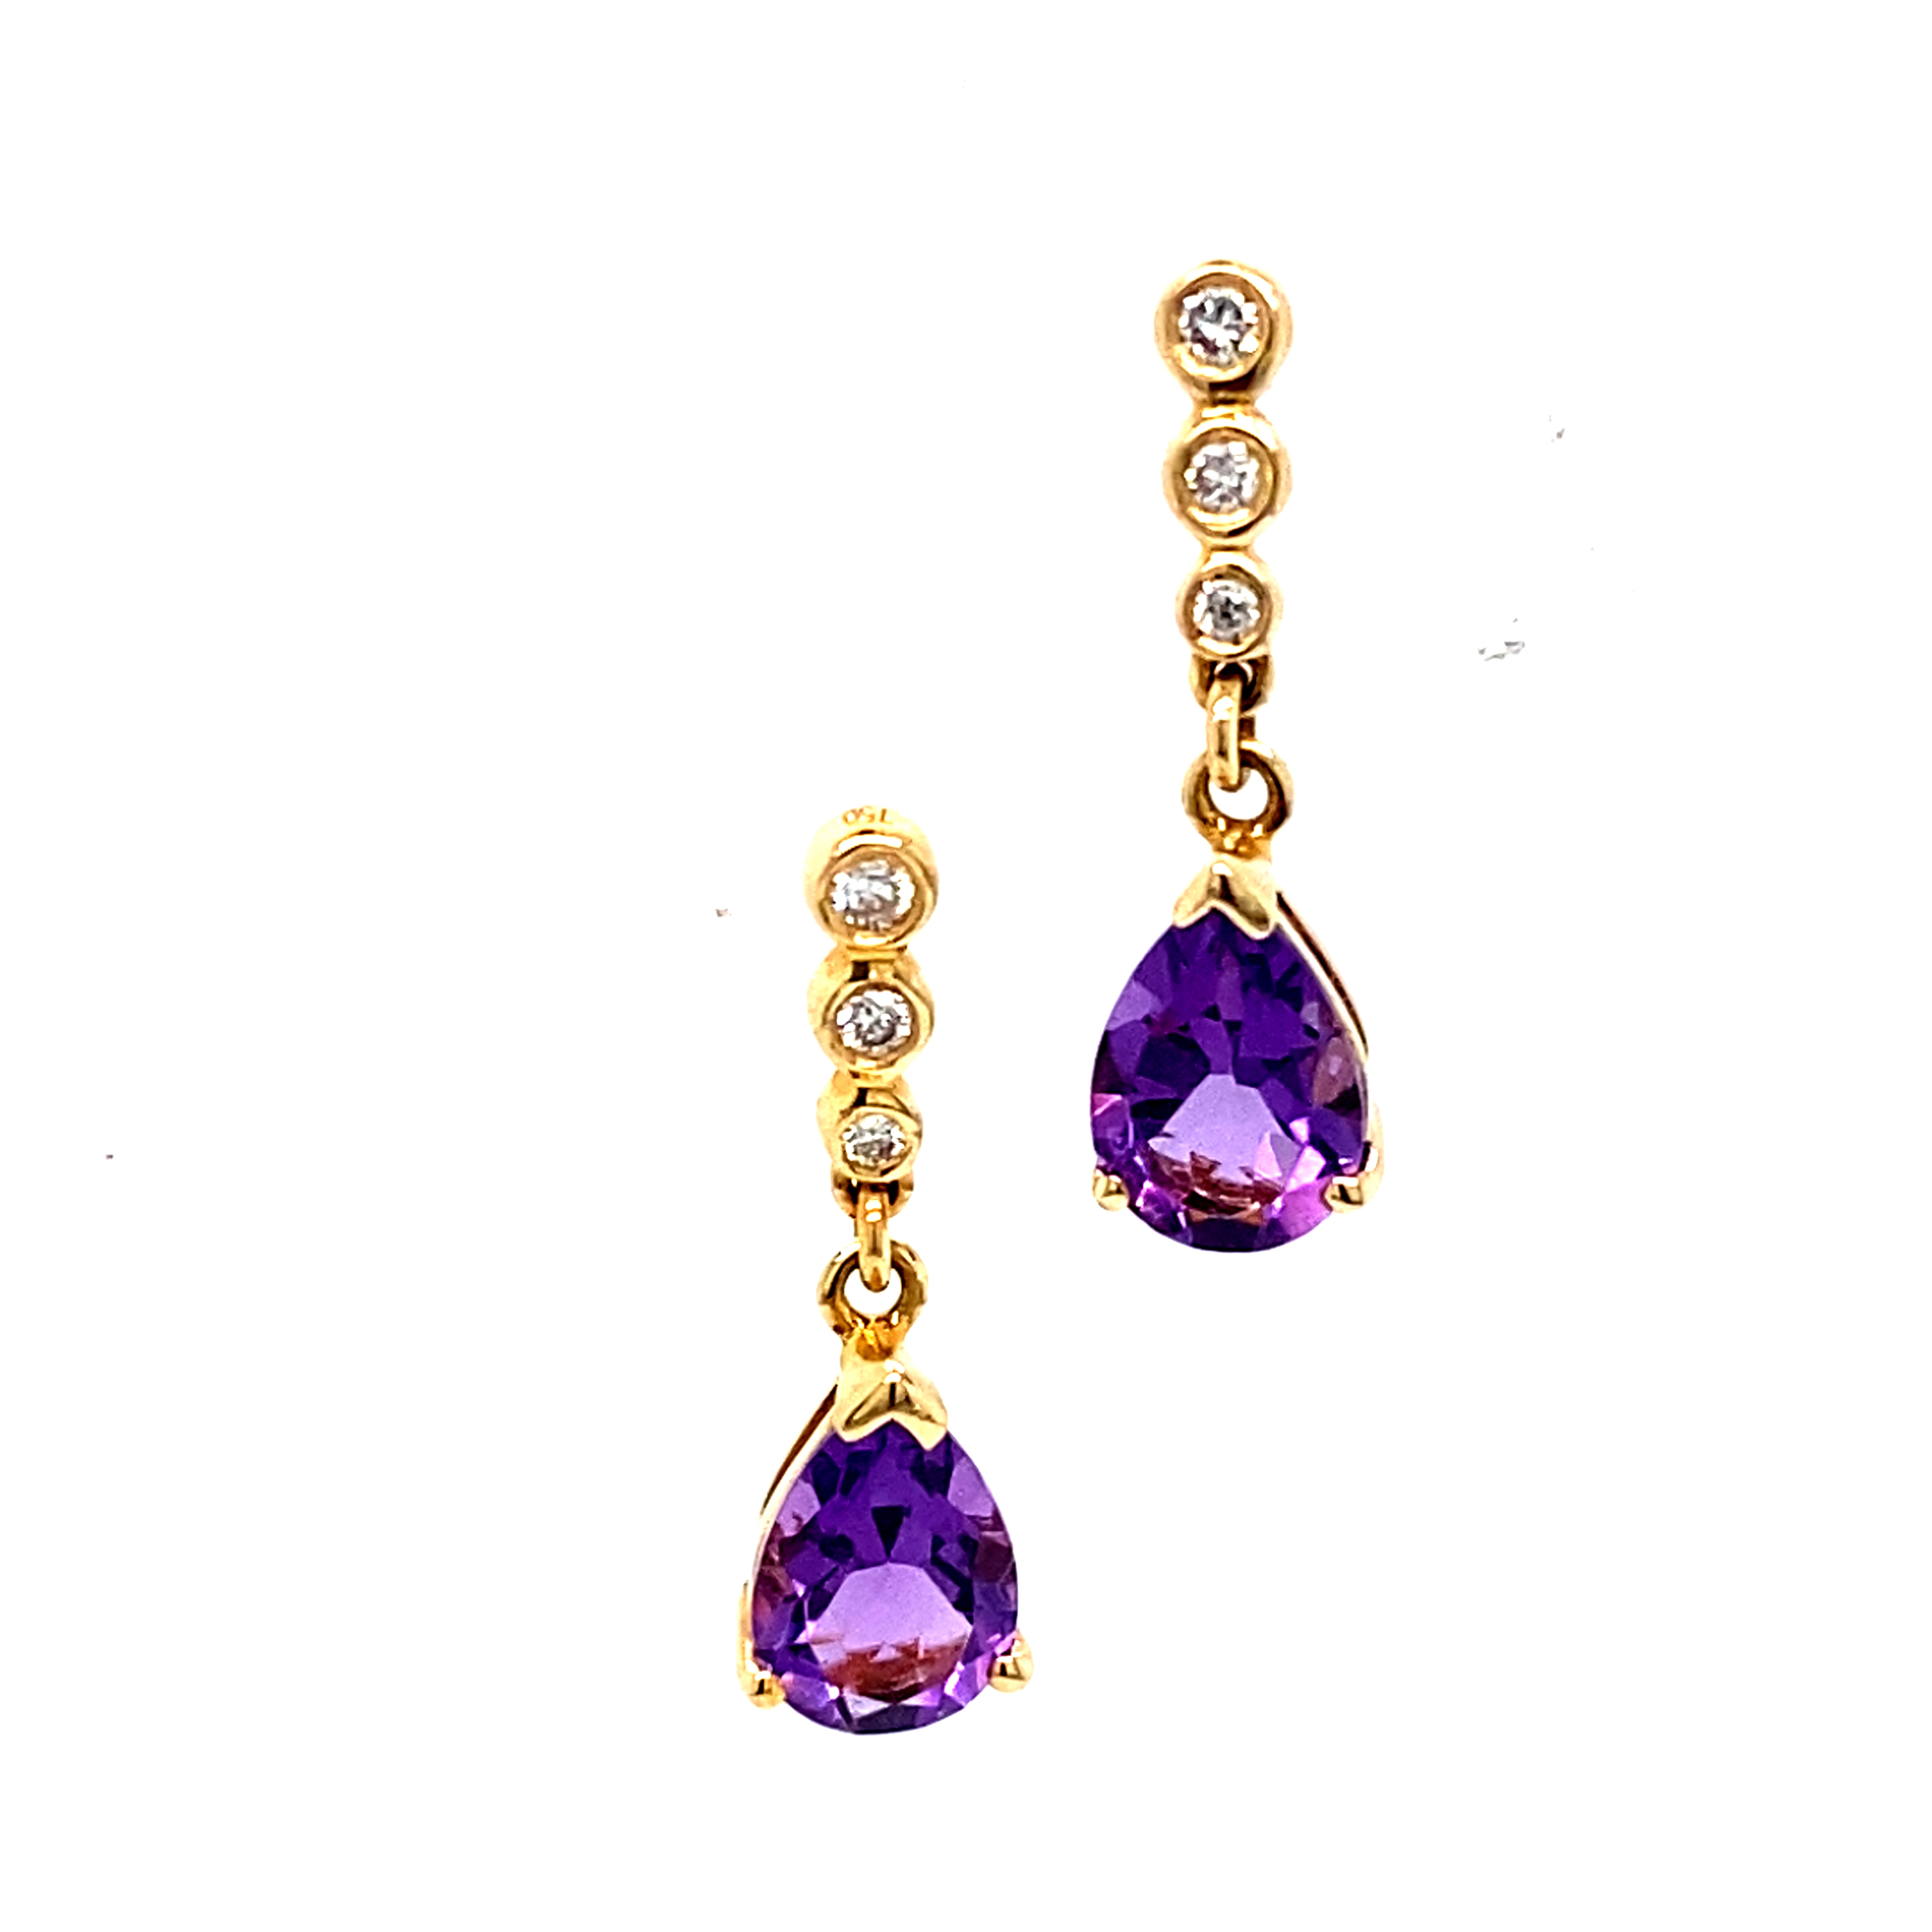 18 Carat Yellow Gold, Amethyst and Diamond Drop Earrings